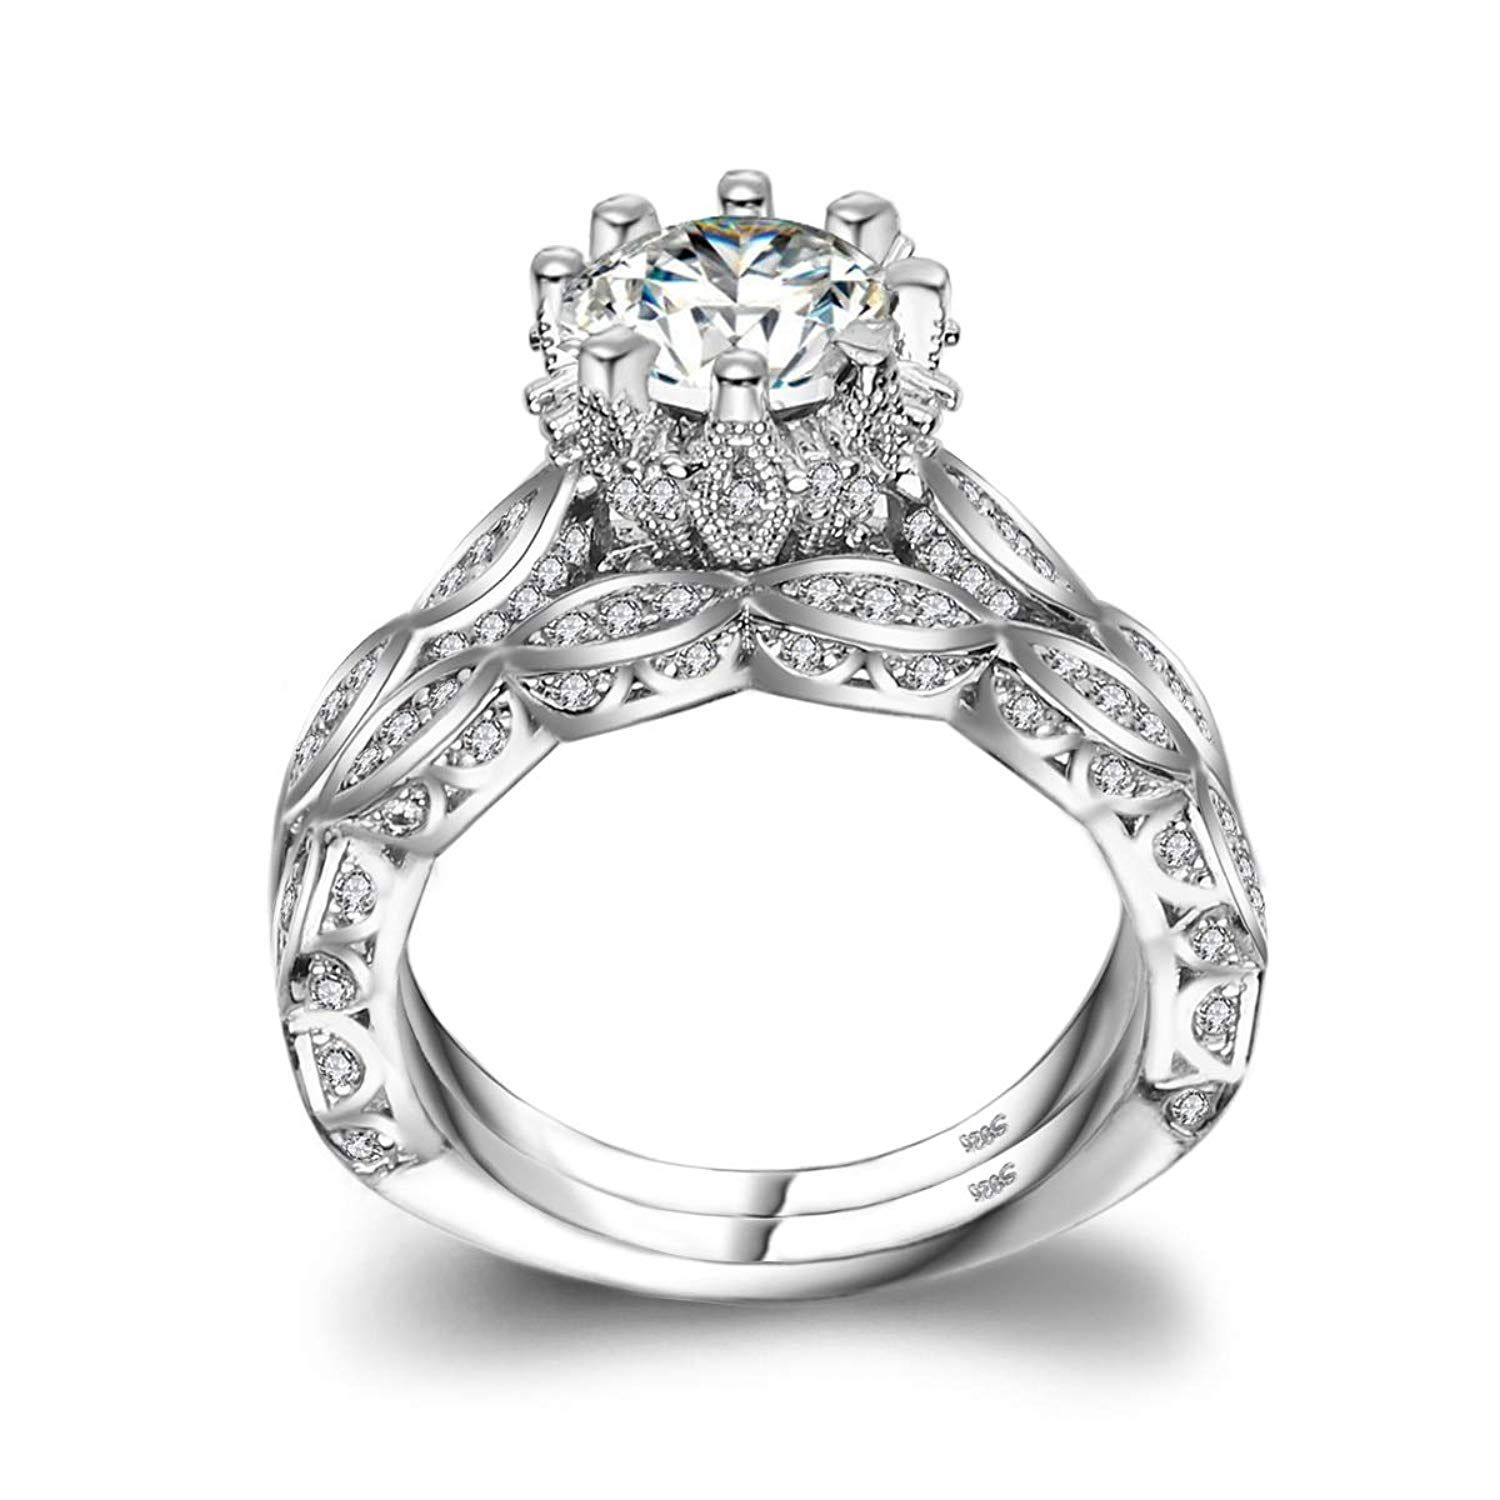 Lsooyh 18k Gold Plated Band Ring Sets Cz Cubic Zirconia For